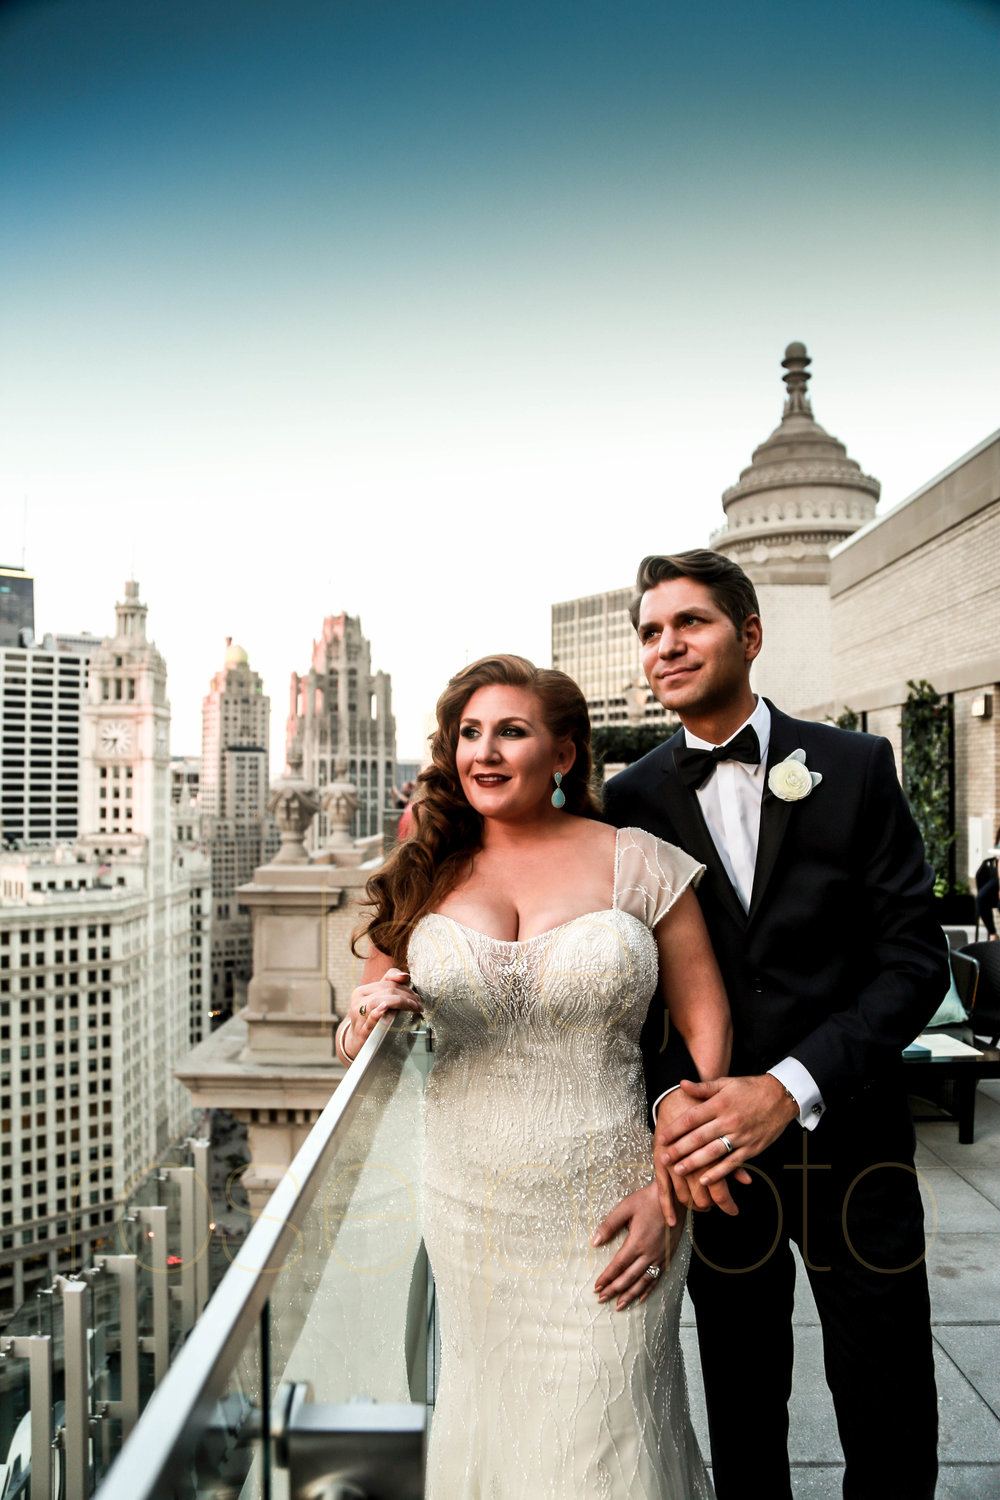 London House Chicago Wedding Photographer best of wedding day photography-26.jpg